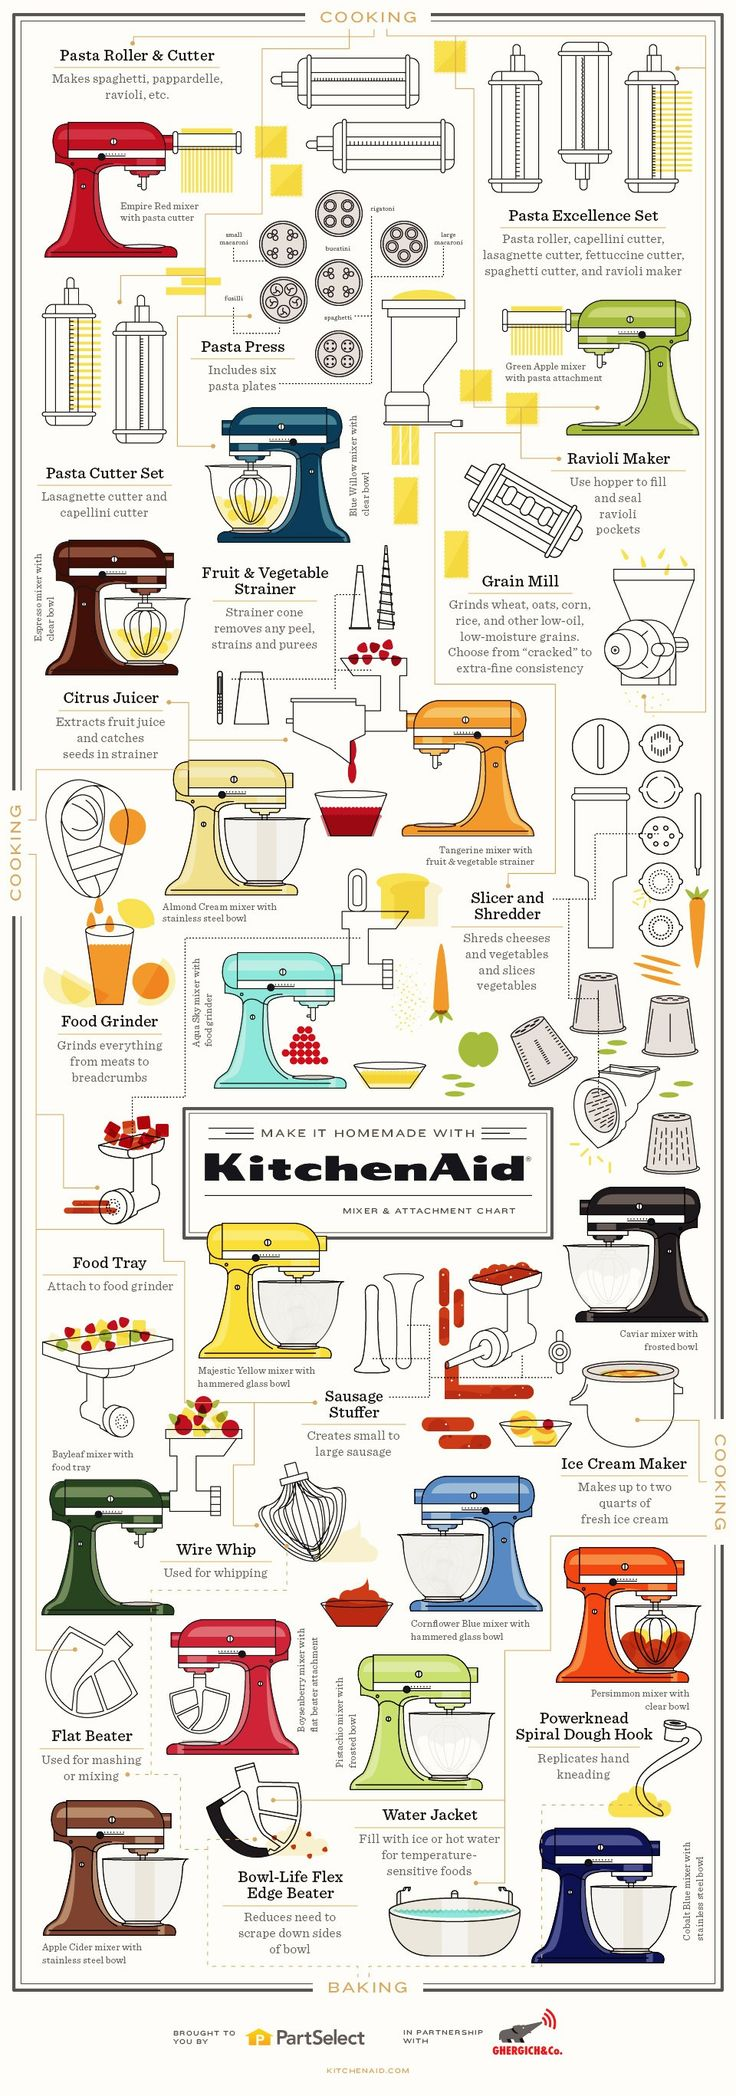 Every KitchenAid Mixer attachment & what they do with them, wow I feel cheated.